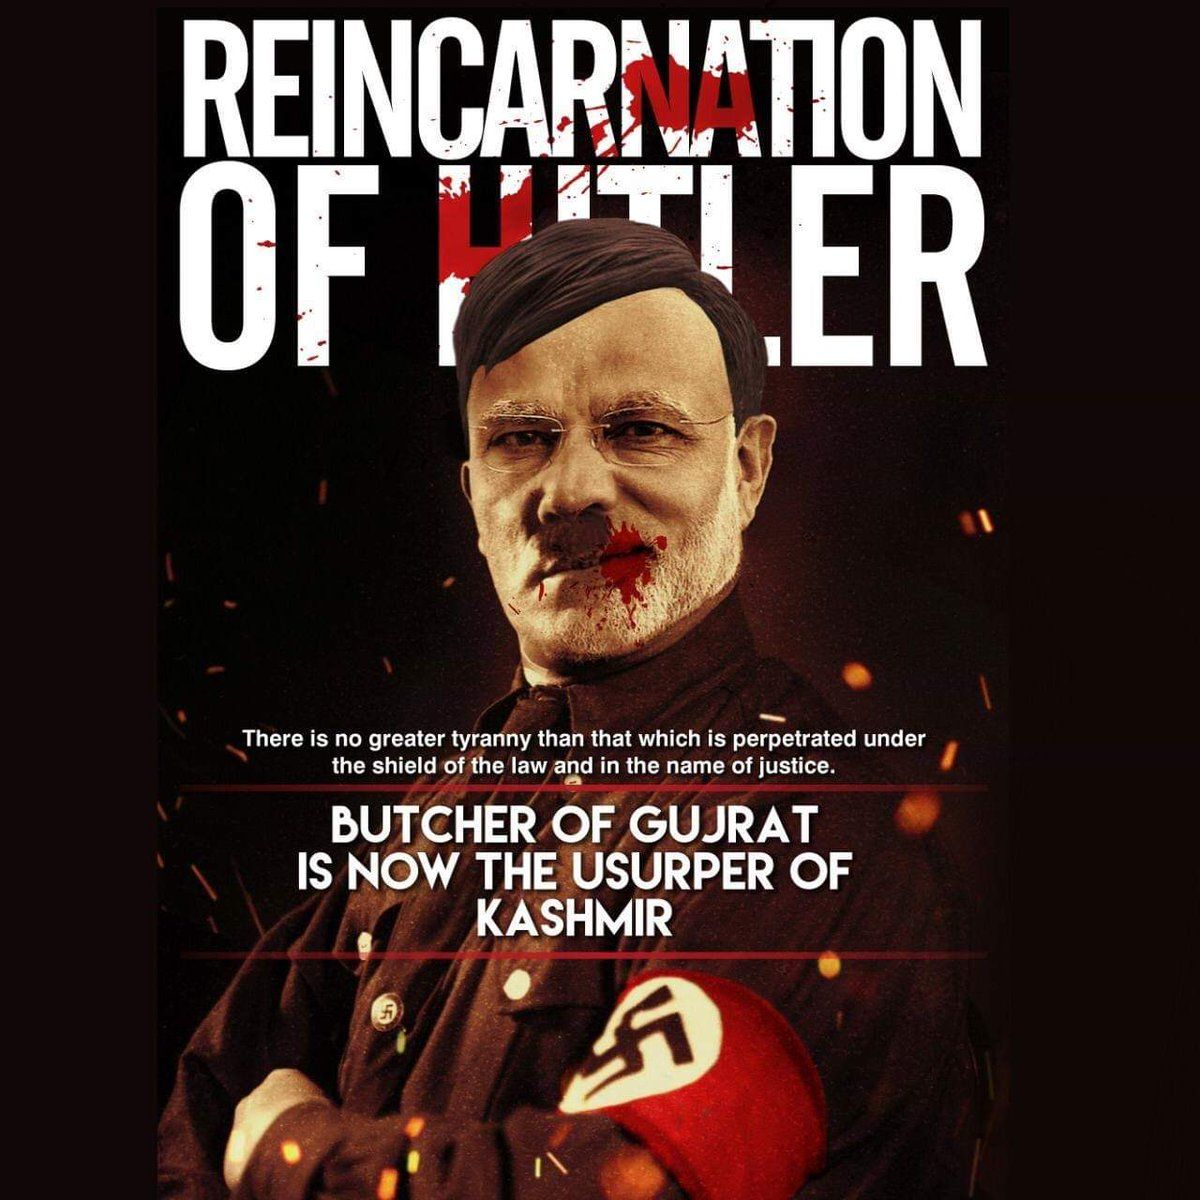 """""""Butcher of Gujrat (Narendra Modi) is now the usurper of Kashmir"""", There is no great tyranny than that which is perpetrated under the shield of the law and in the name of justice 